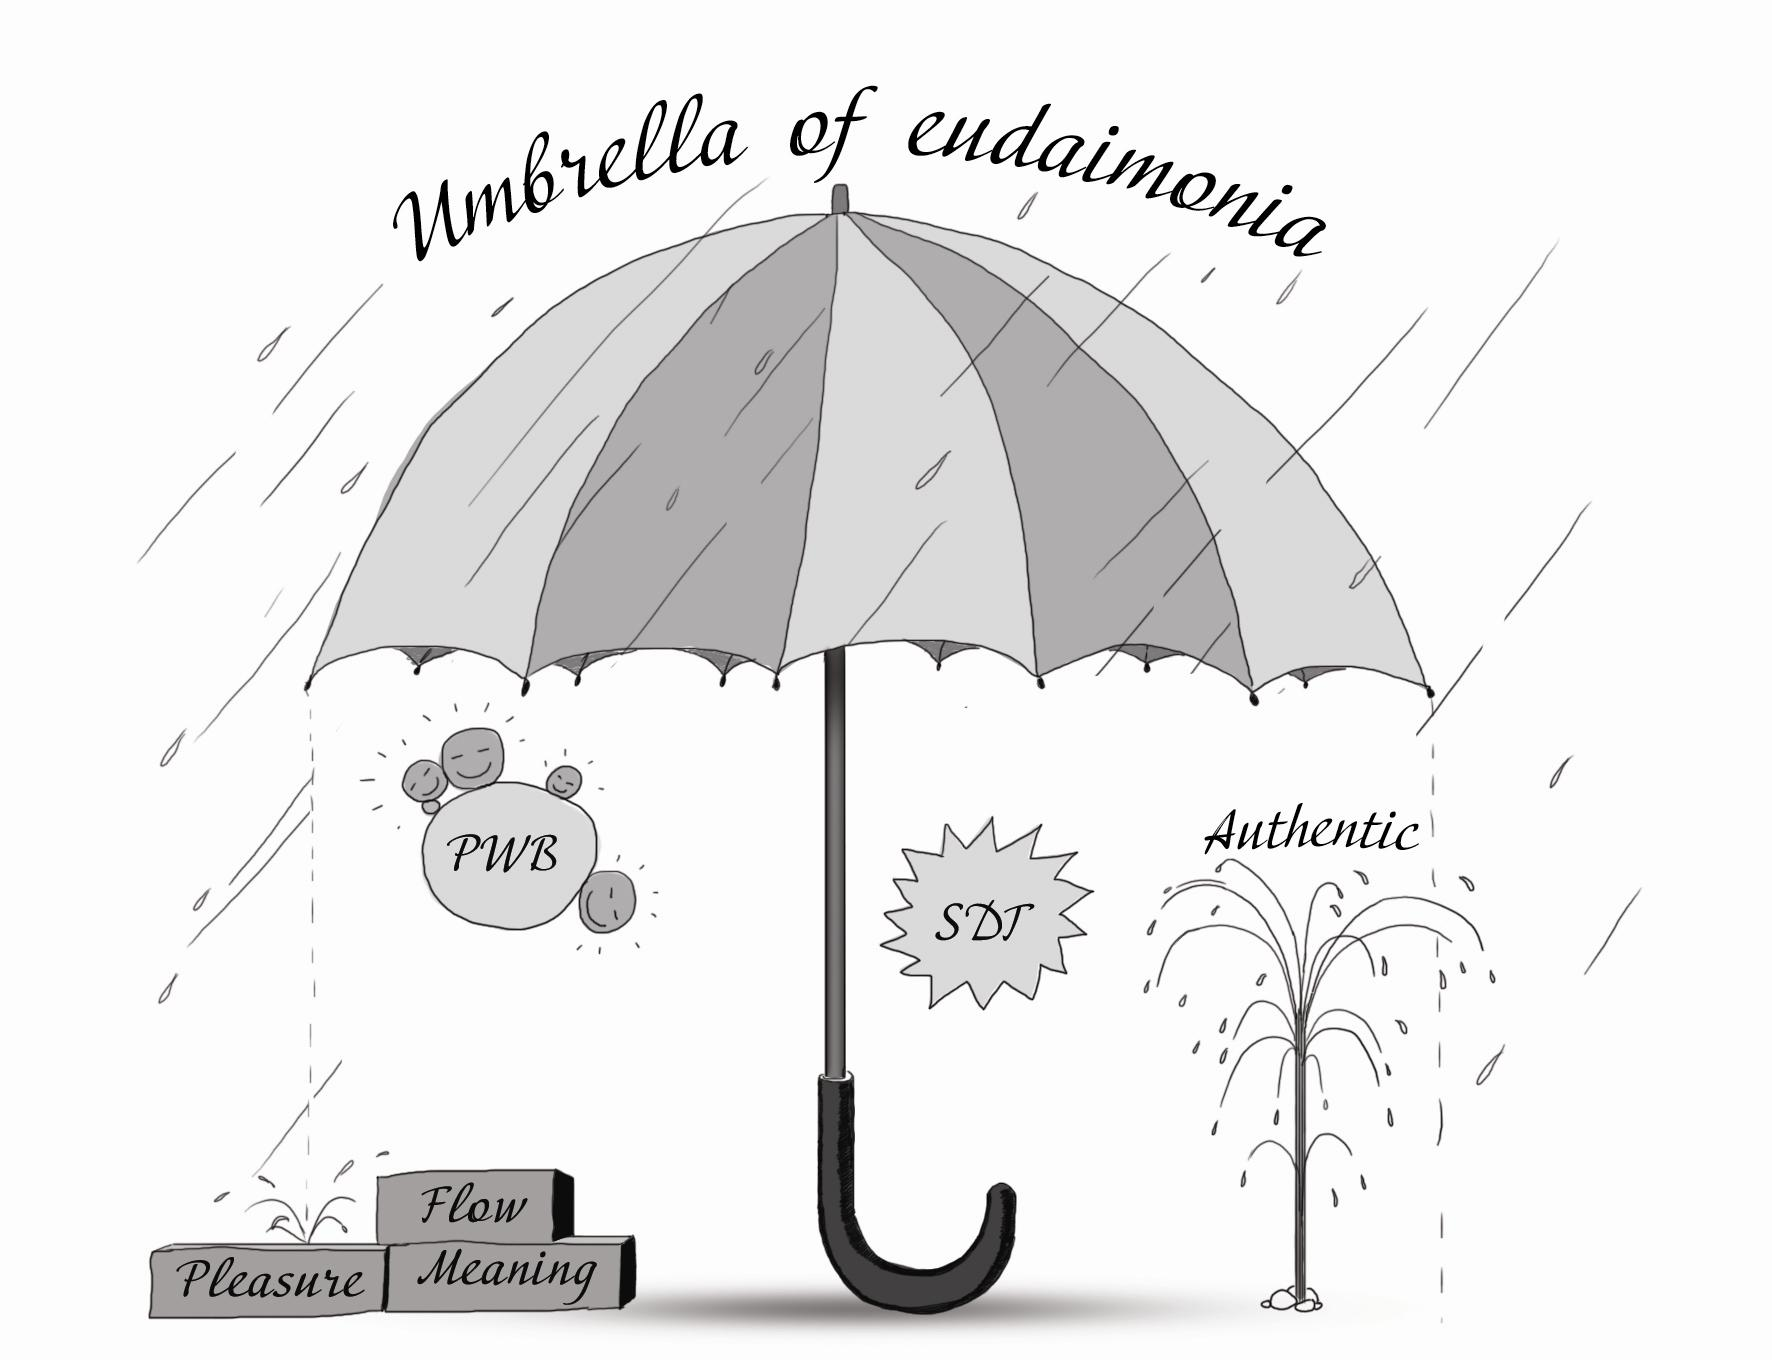 Theories of Well-Being: What Else Lives Under the Umbrella of Eudaimonia?